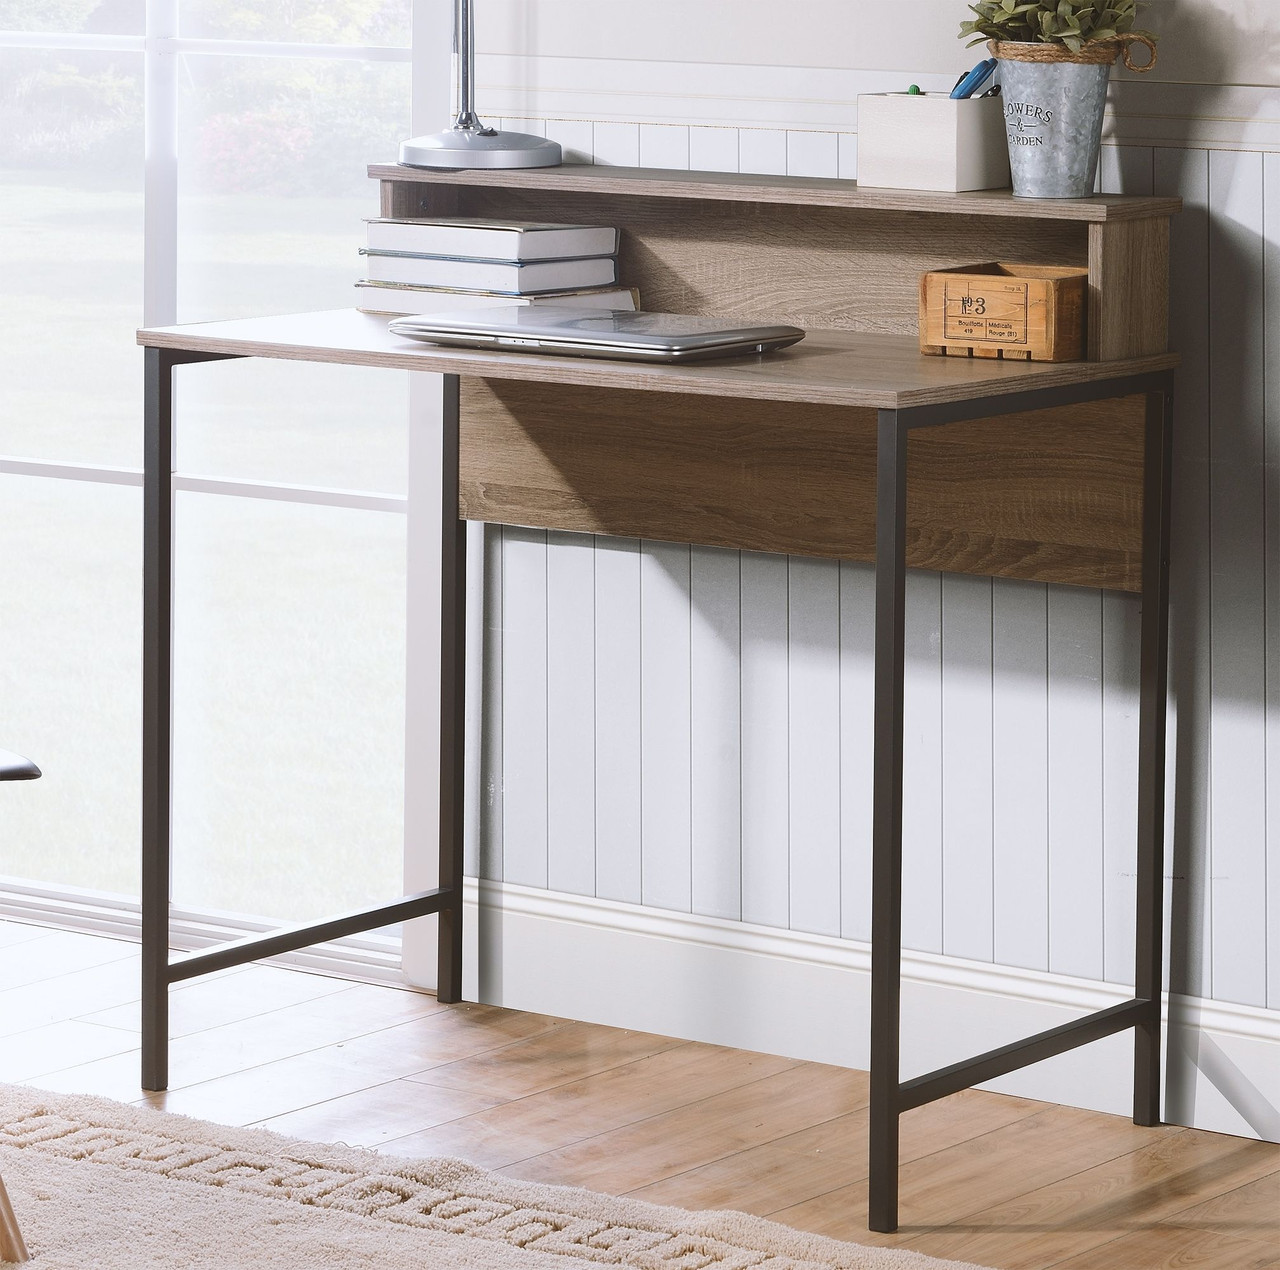 Titania Grayish Brown Home Office Small Desk On Sale At American Furniture Of Slidell Serving Slidell La